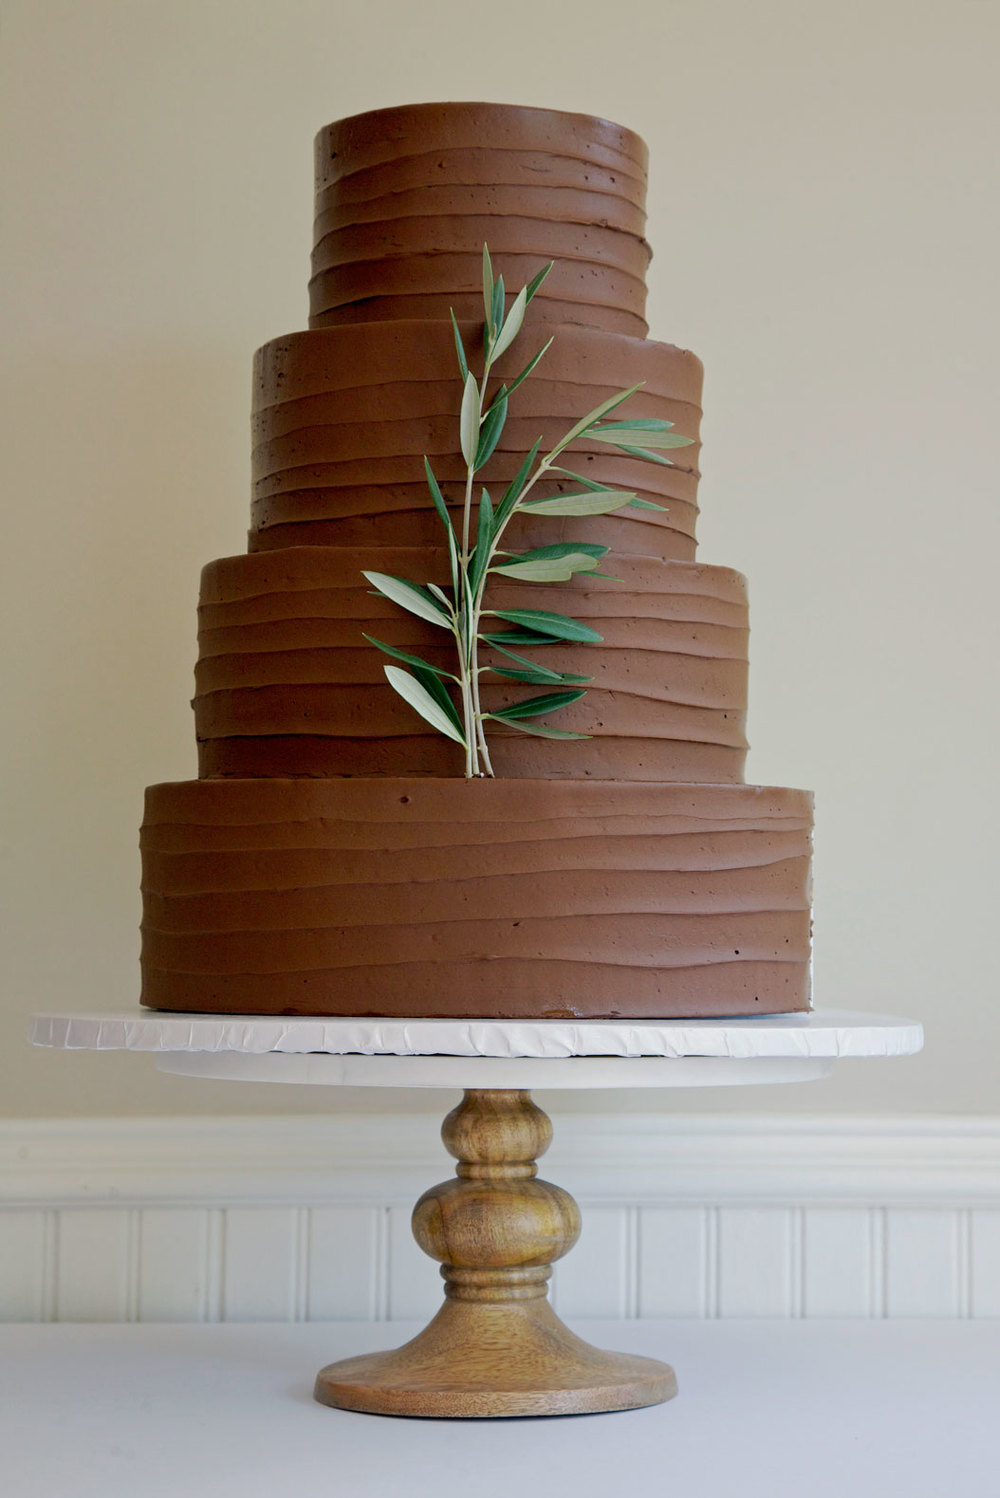 sweet-wedding-cake21.jpg